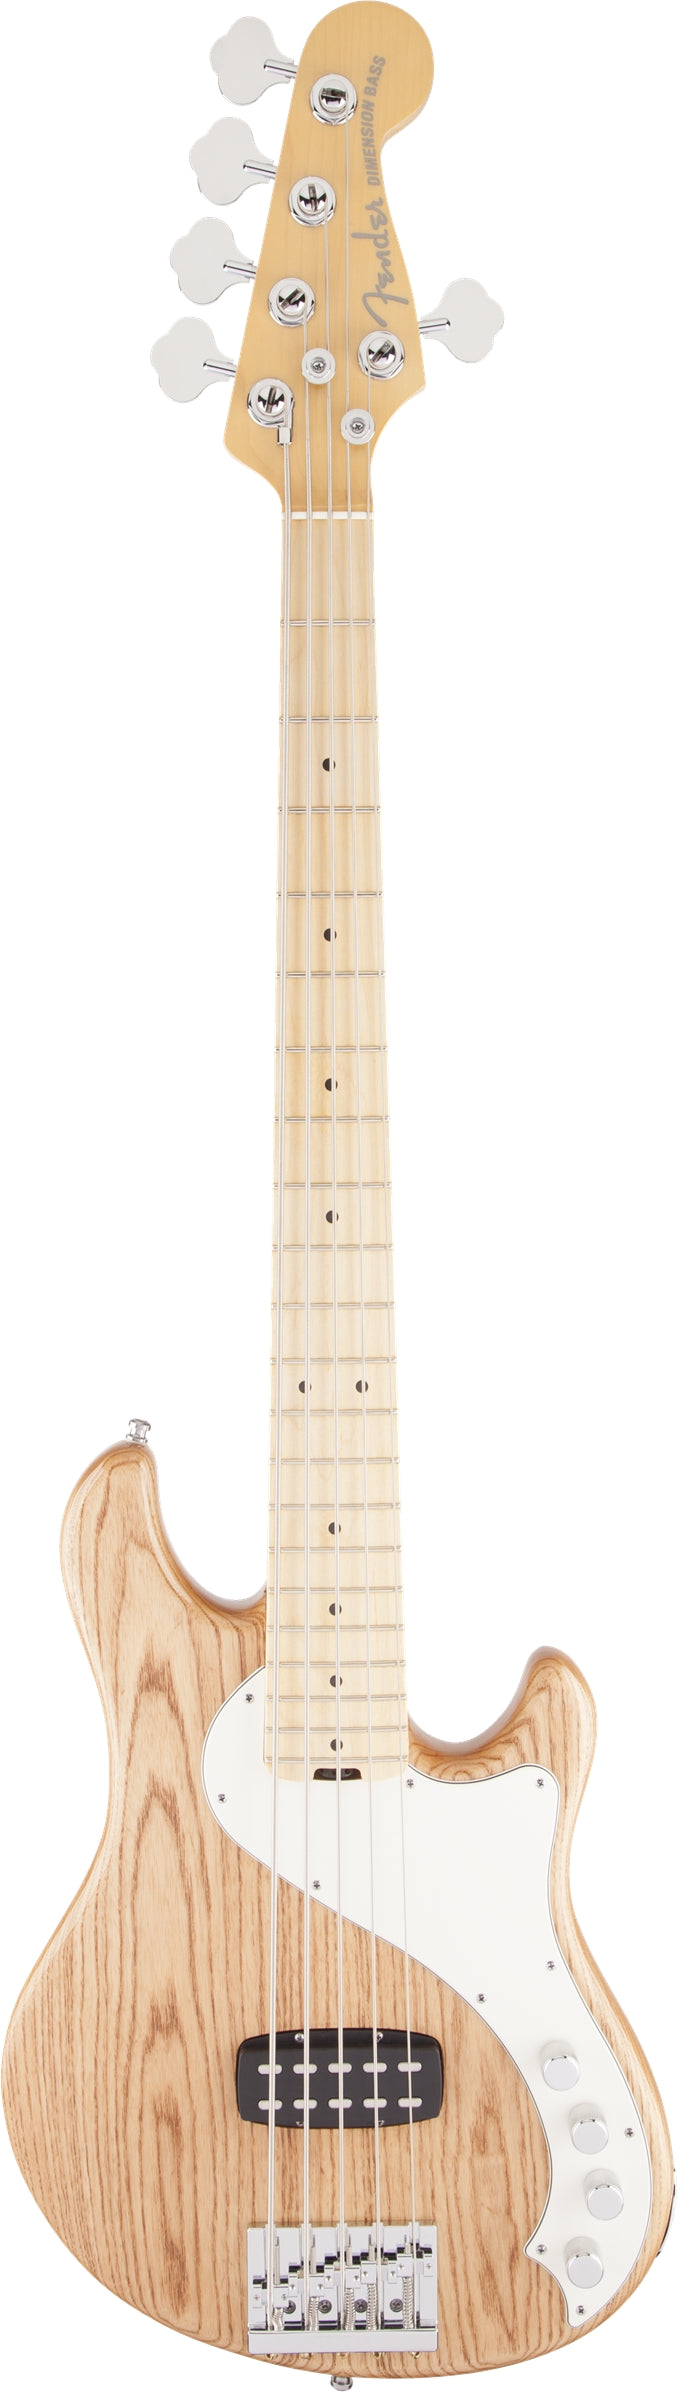 Fender American Deluxe Dimension Bass V 5 String Bass Guitar W/ Maple Fingerboard - Natural